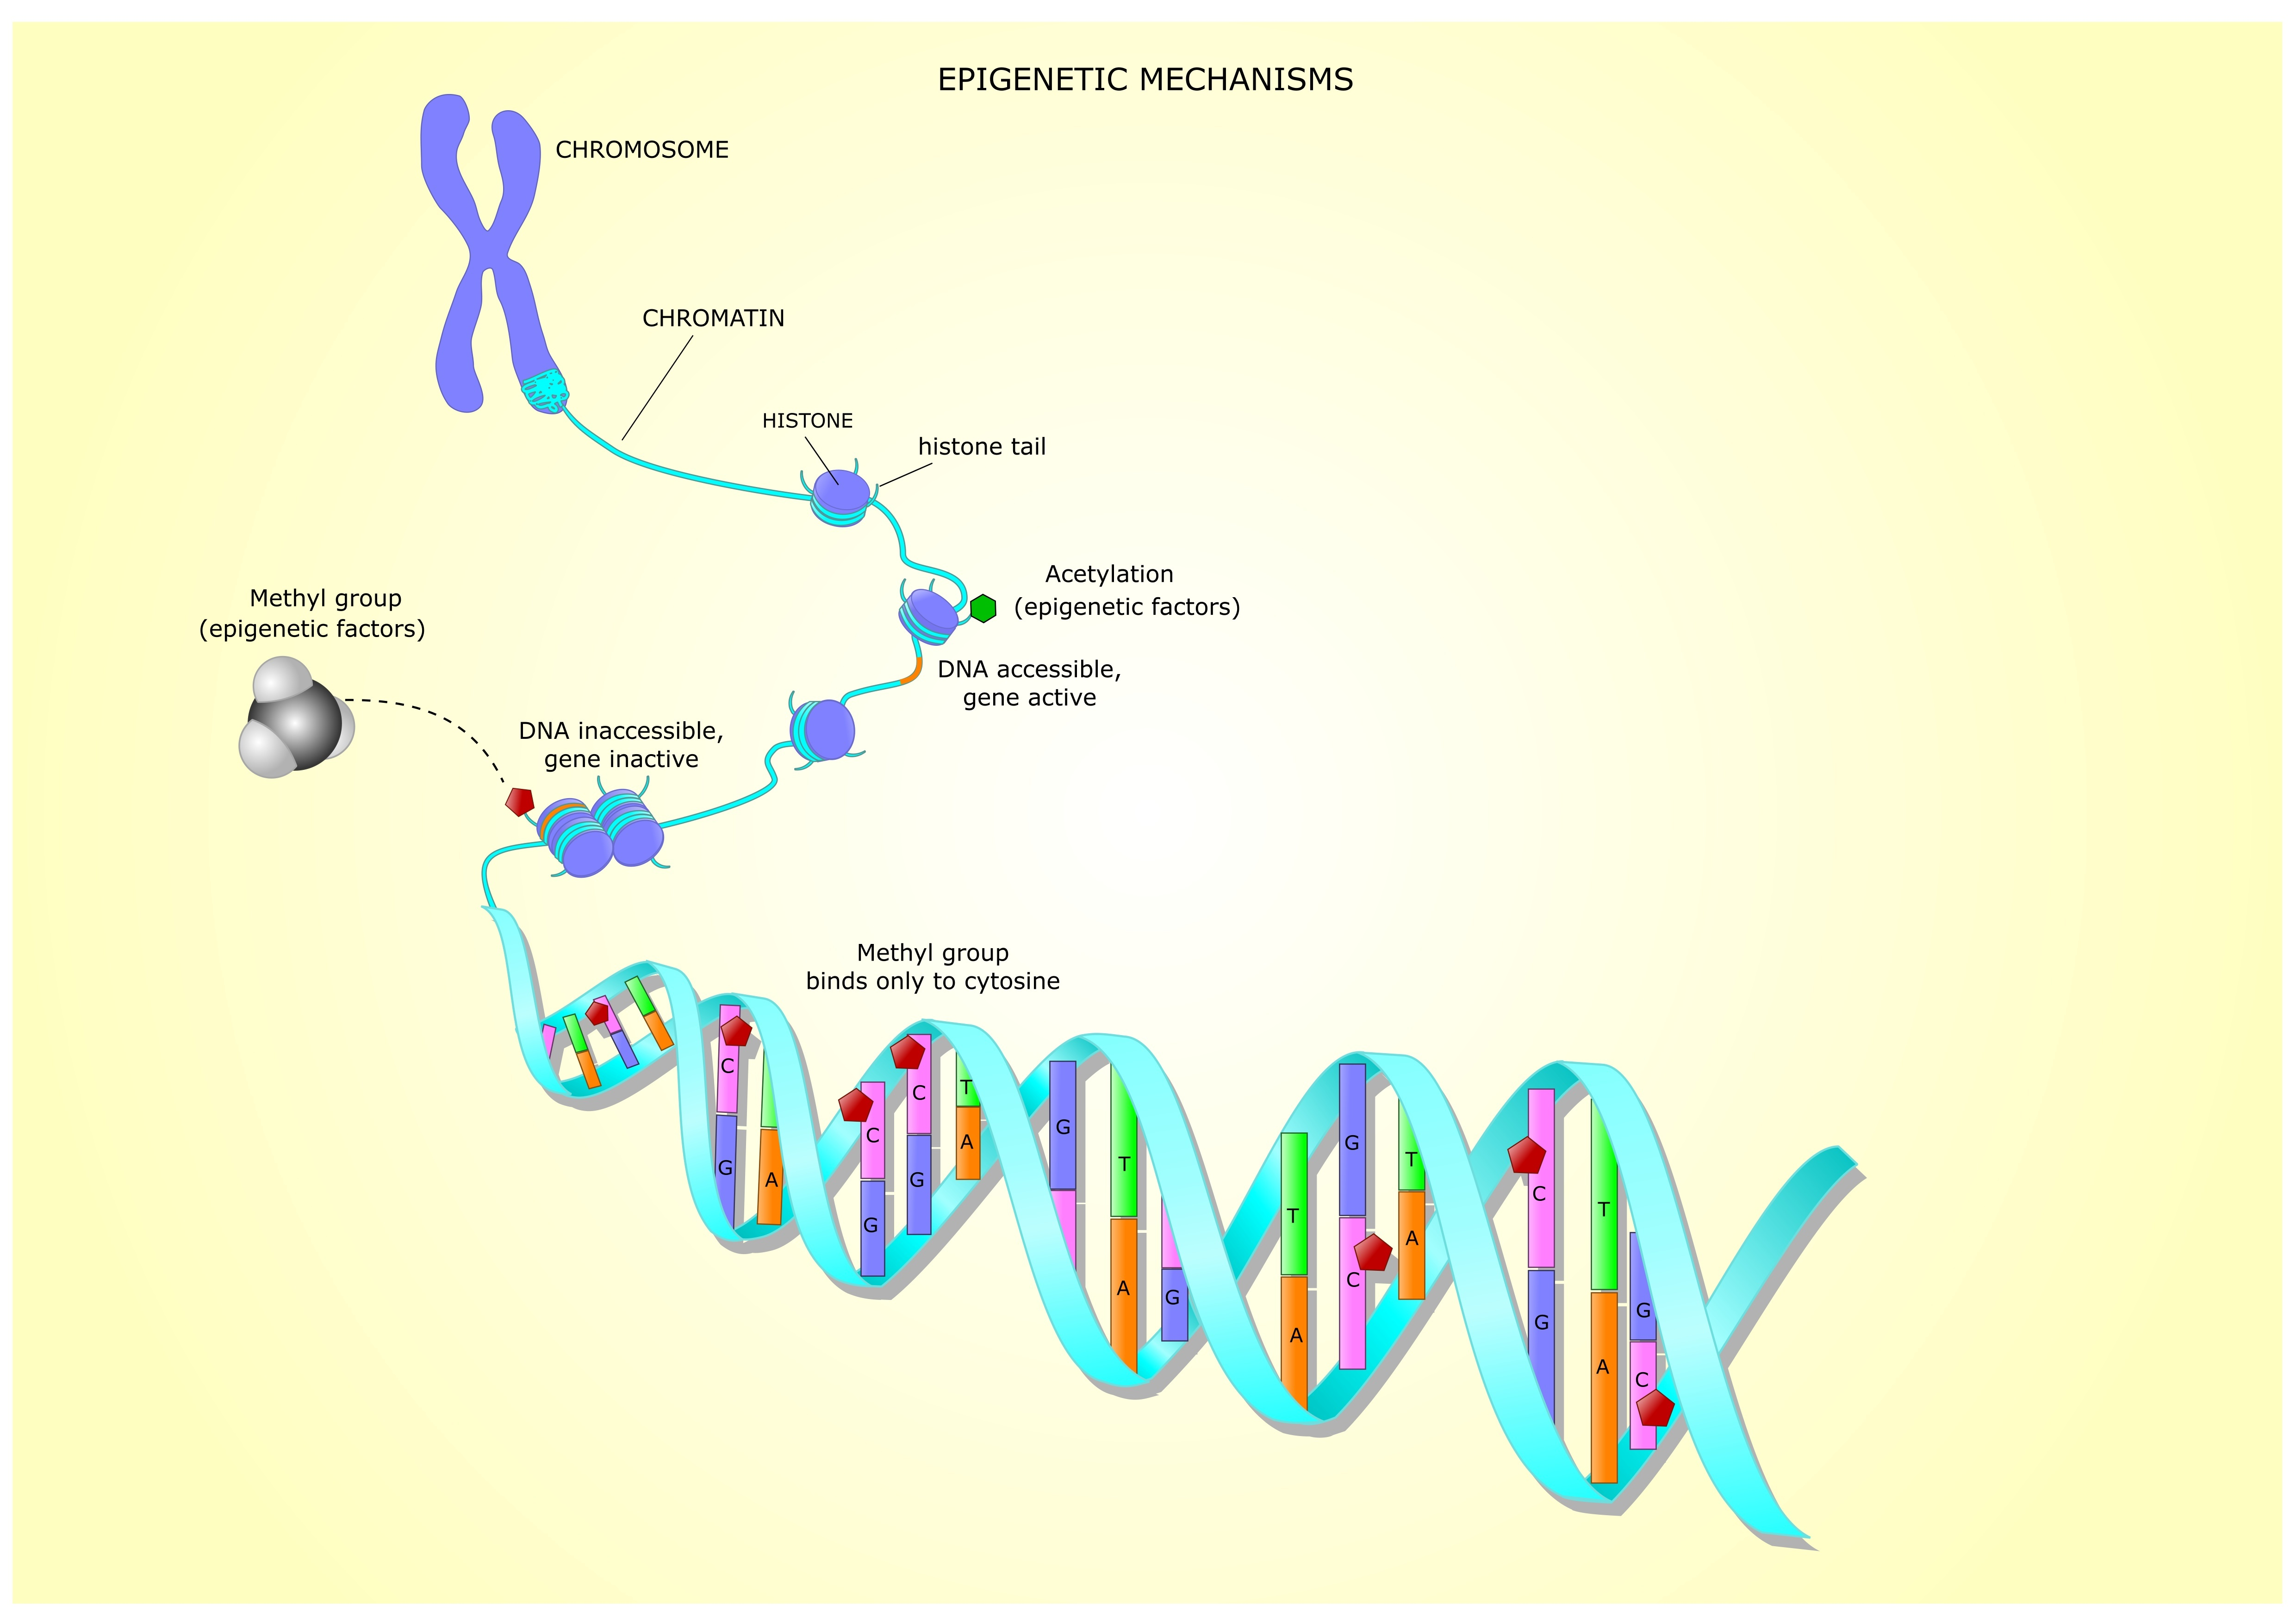 A methylation process is crucial in proper DNA expression